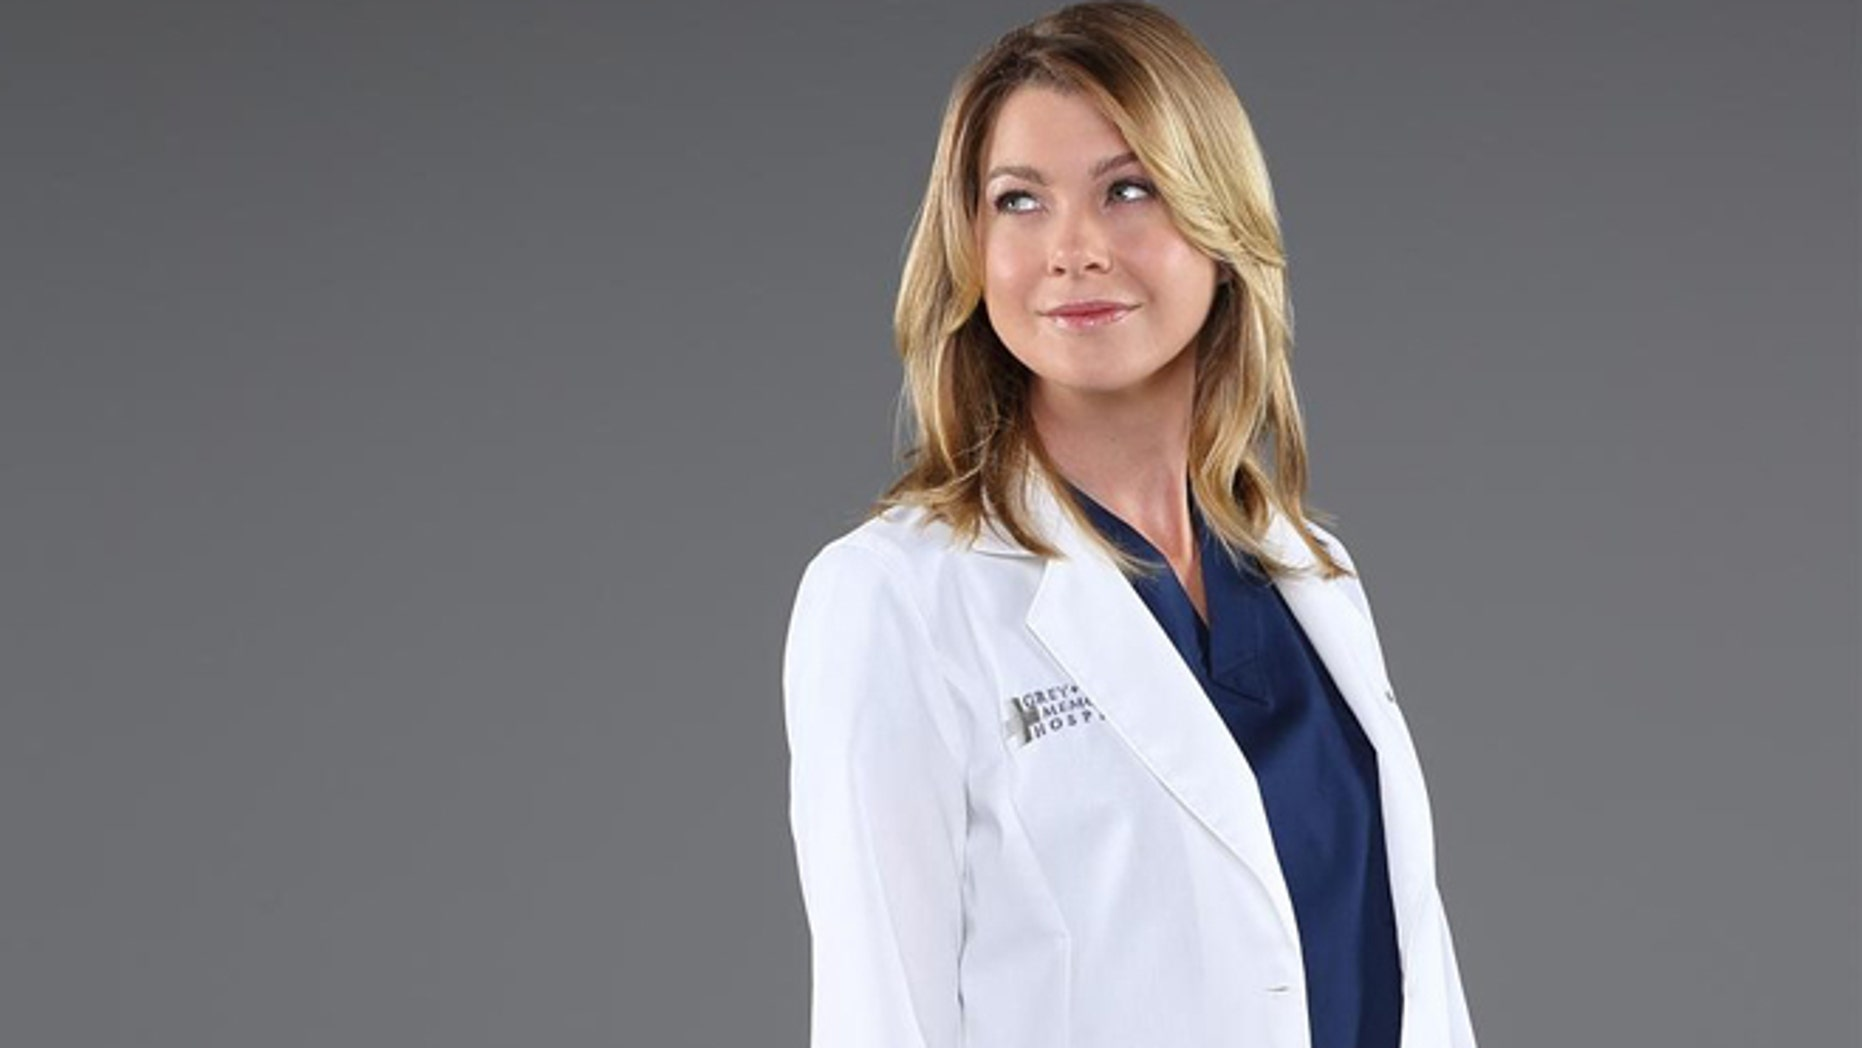 """Grey's Anatomy"" stars Ellen Pompeo as Dr. Meredith Grey."